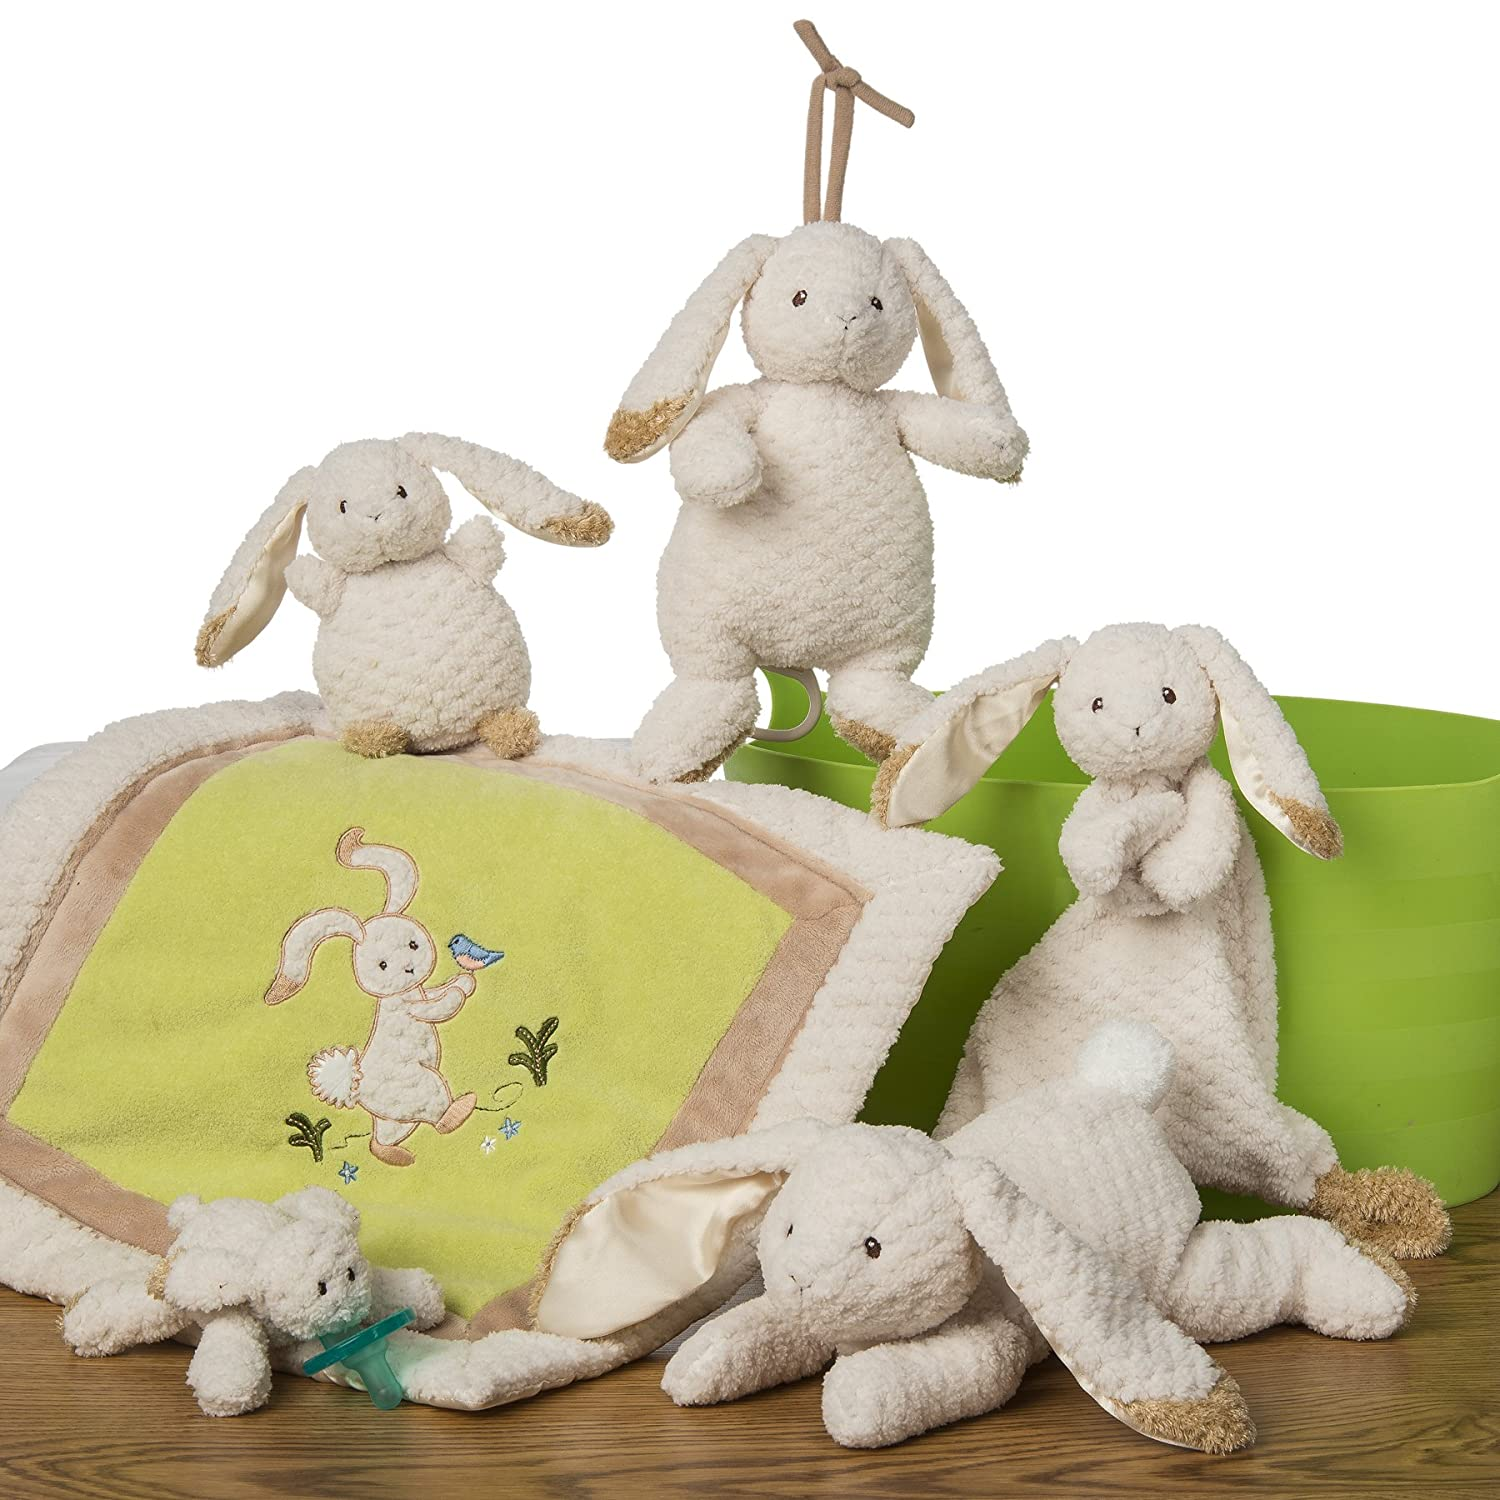 Amazon.com   Mary Meyer Oatmeal Bunny Lovey Blanket   Baby f23c8b7b1